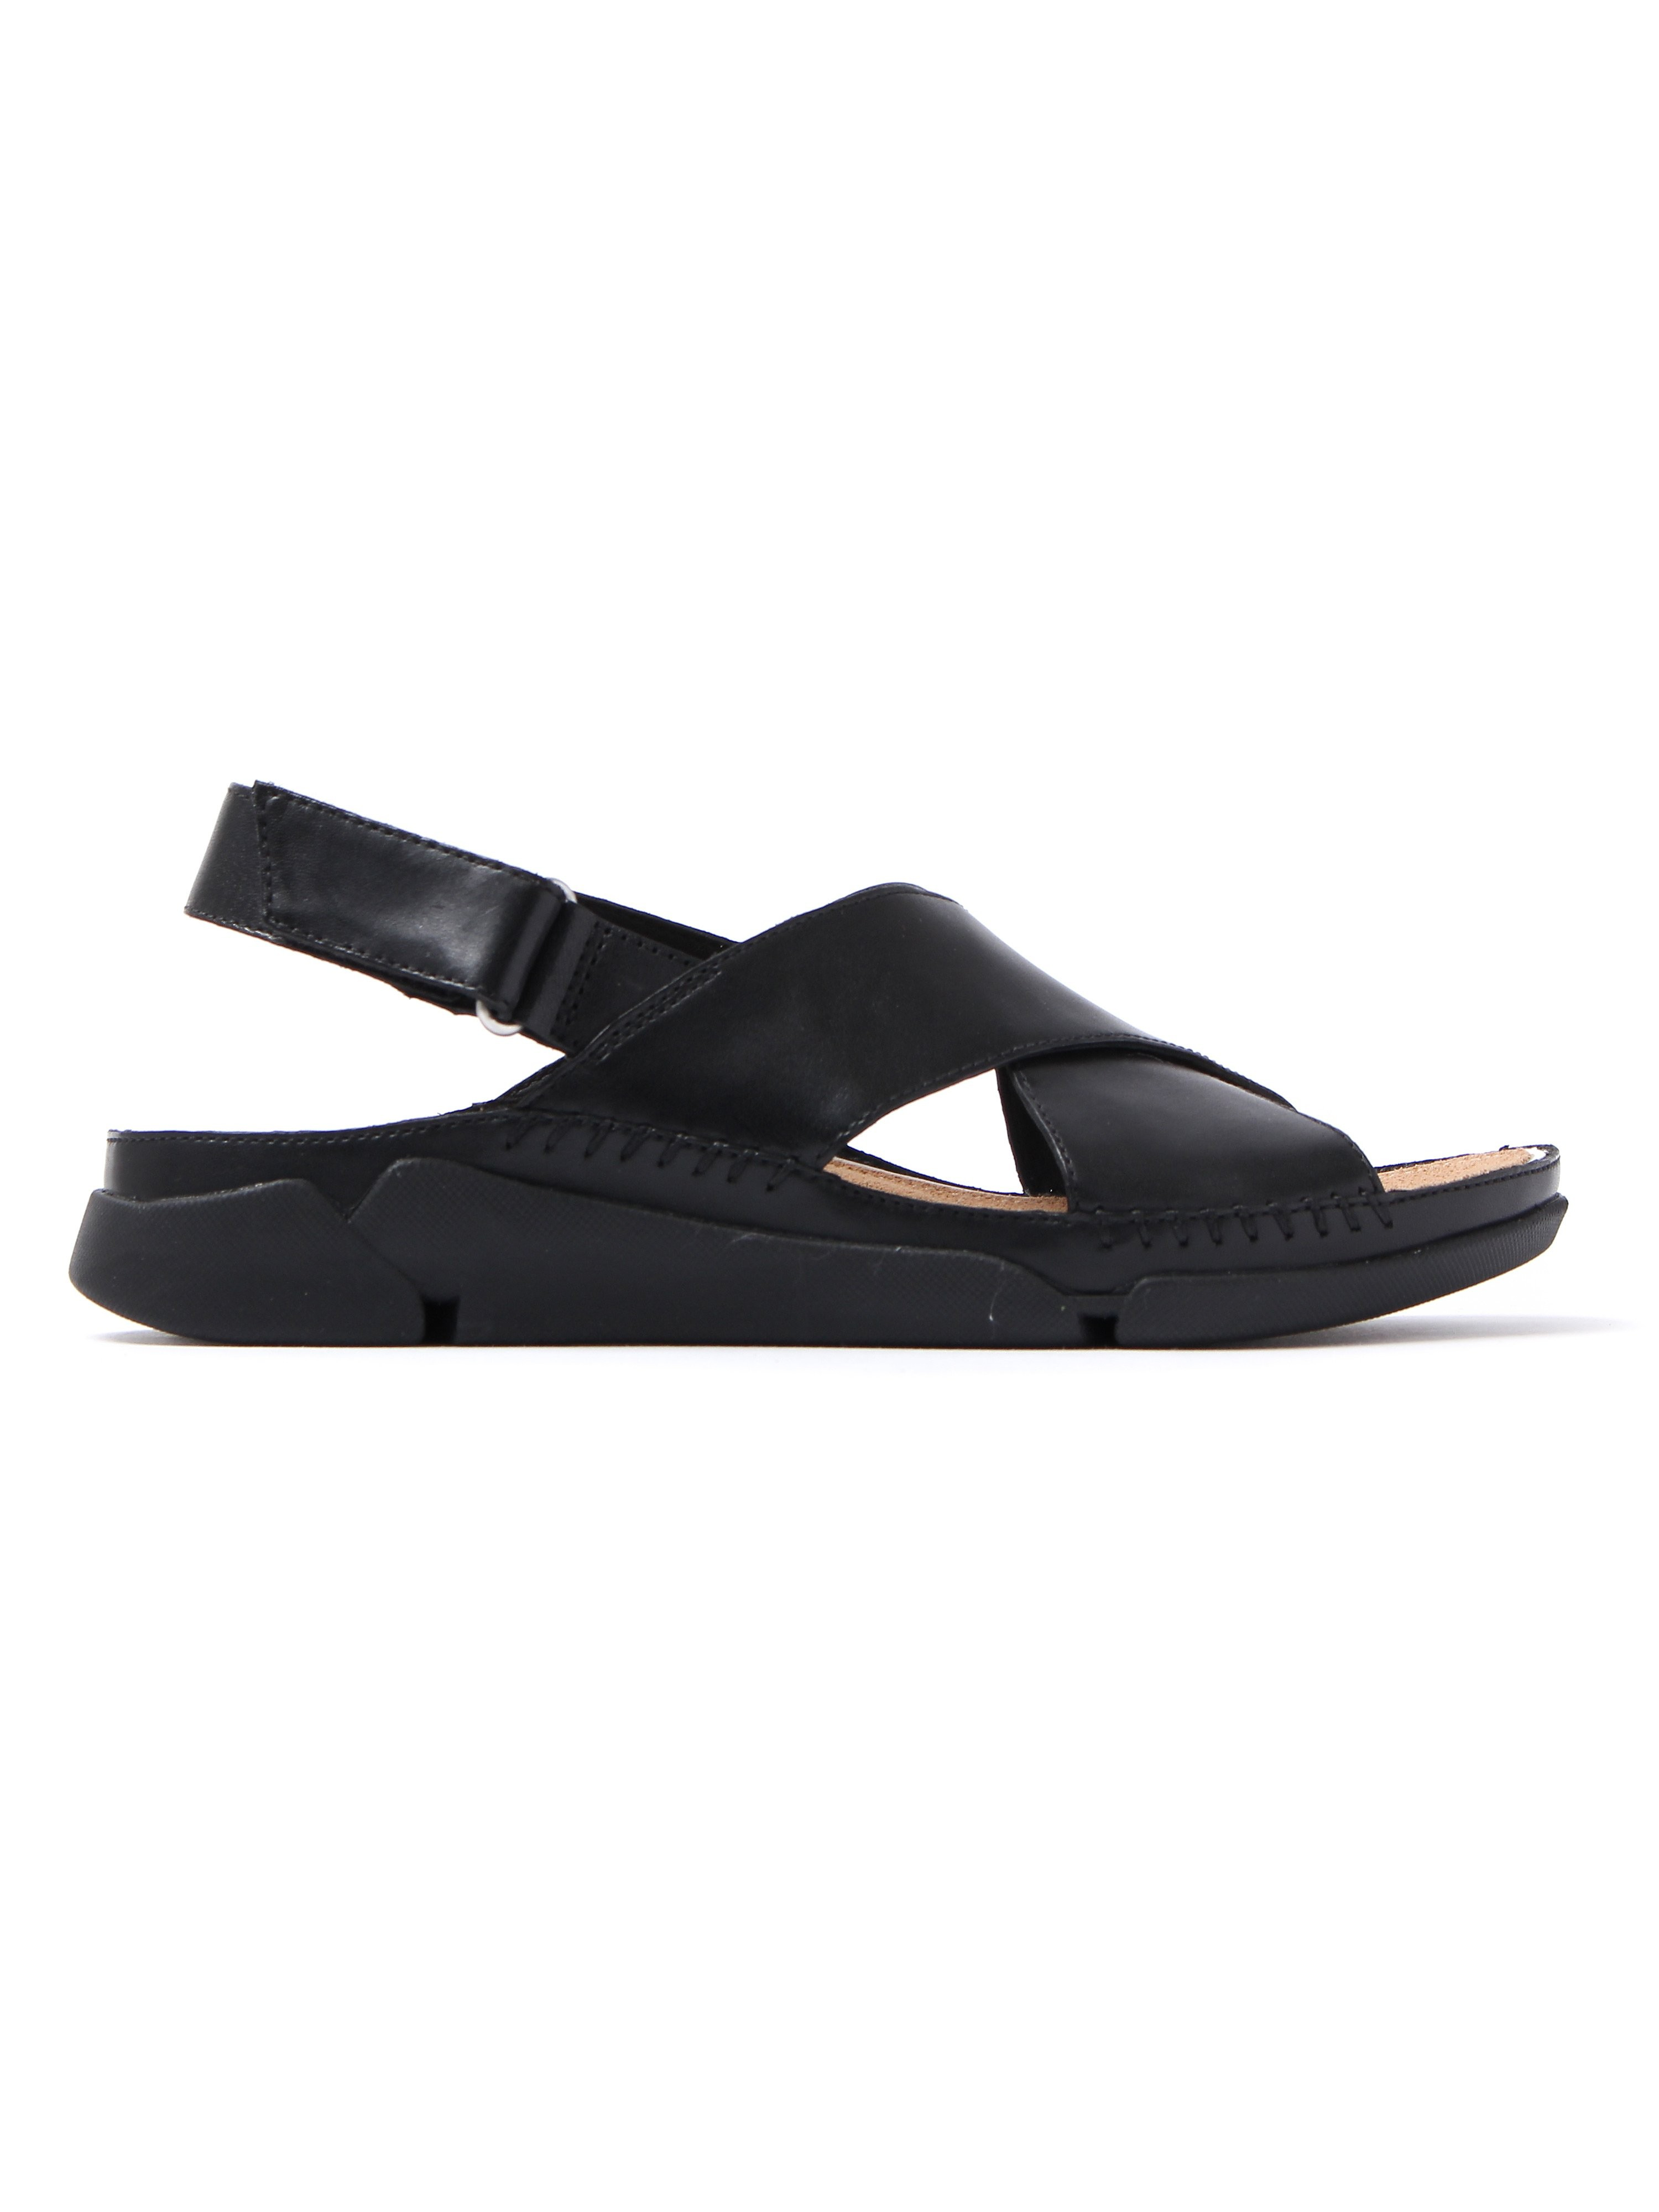 Clarks Women's Tri Alexia Leather Casual Sandals - Black